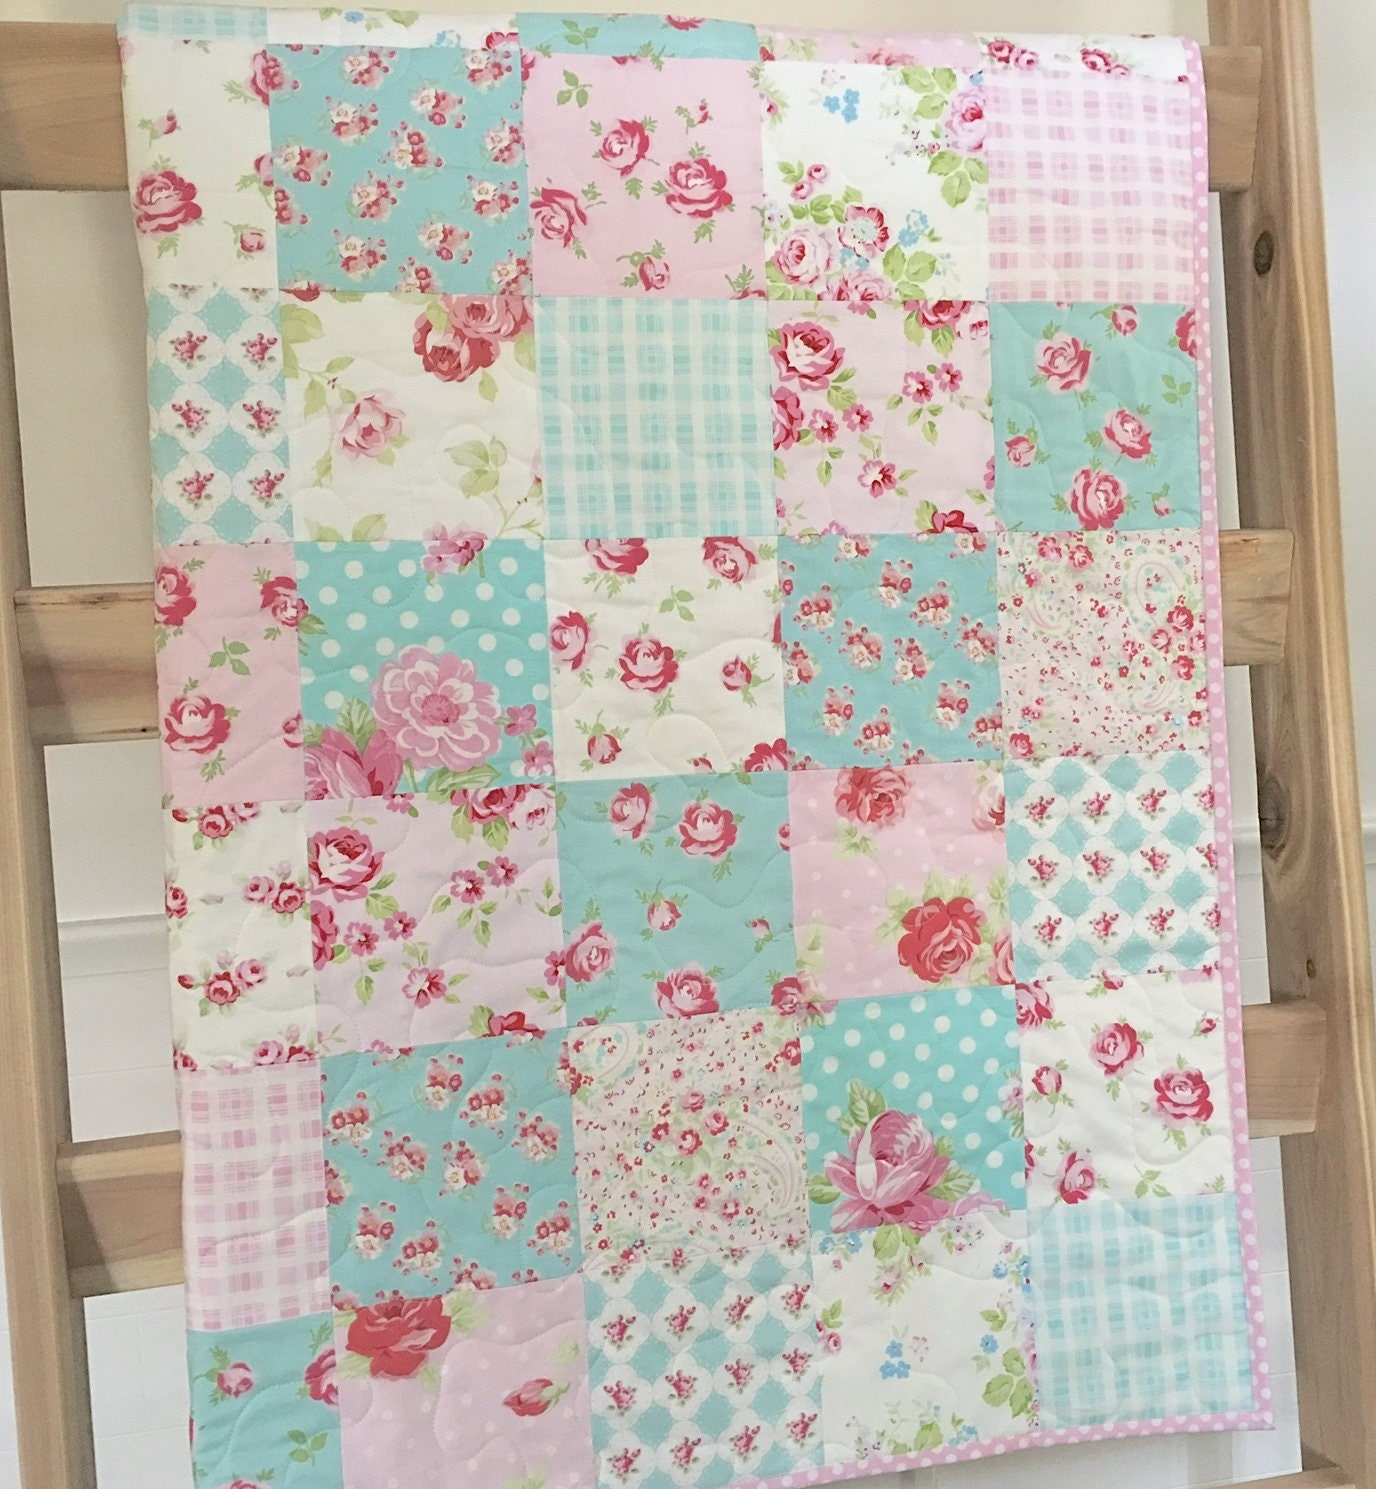 Crib bumper for sale philippines - Roses Baby Quilt Pink Blue Teal Aqua Floral Crib Bedding Baby Bedding Nursery Bedding